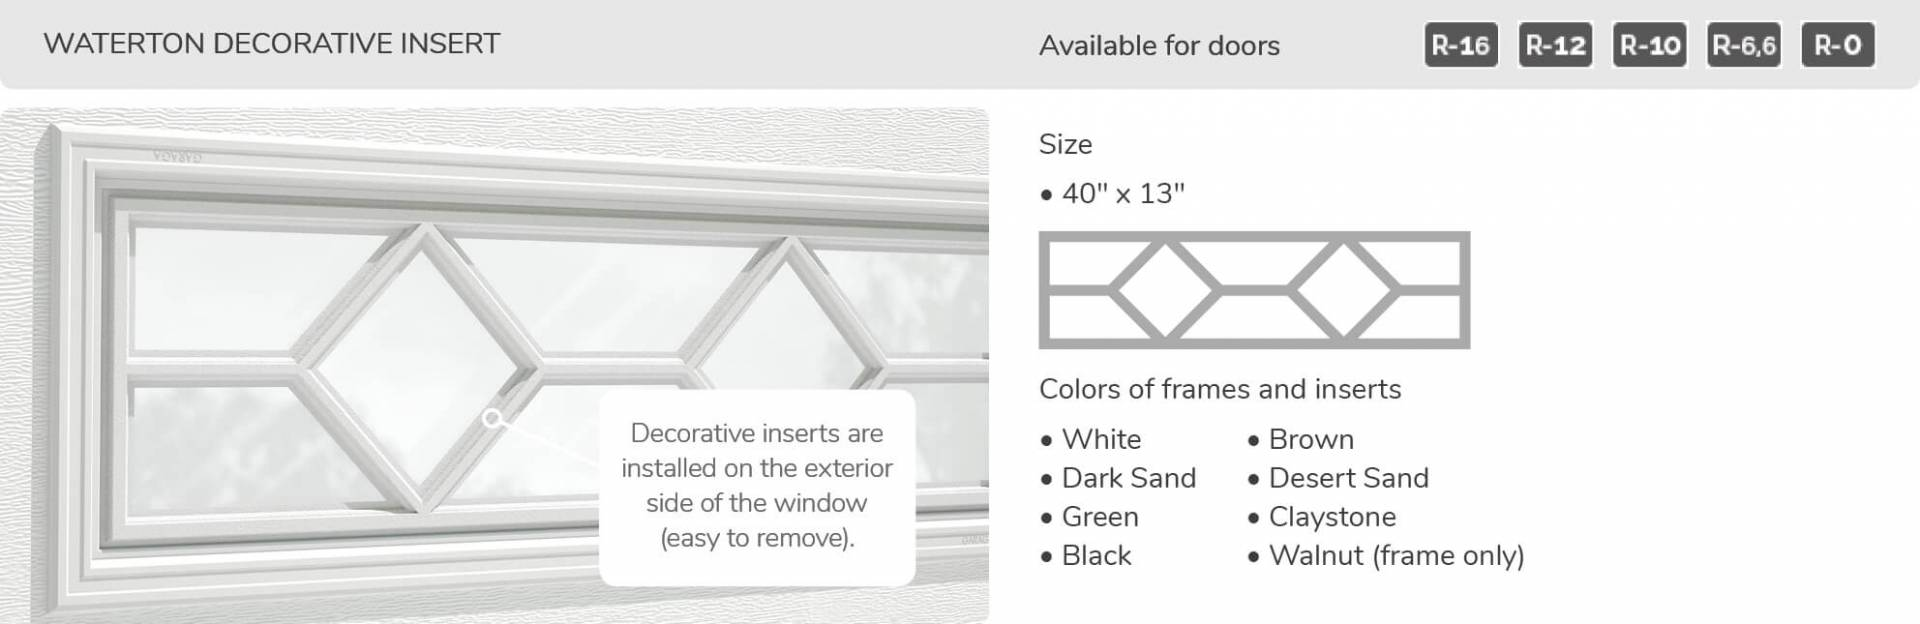 Waterton Decorative Insert, 40' x 13', available for doors: R-16, R-12, R-10, R-6.6, R-0